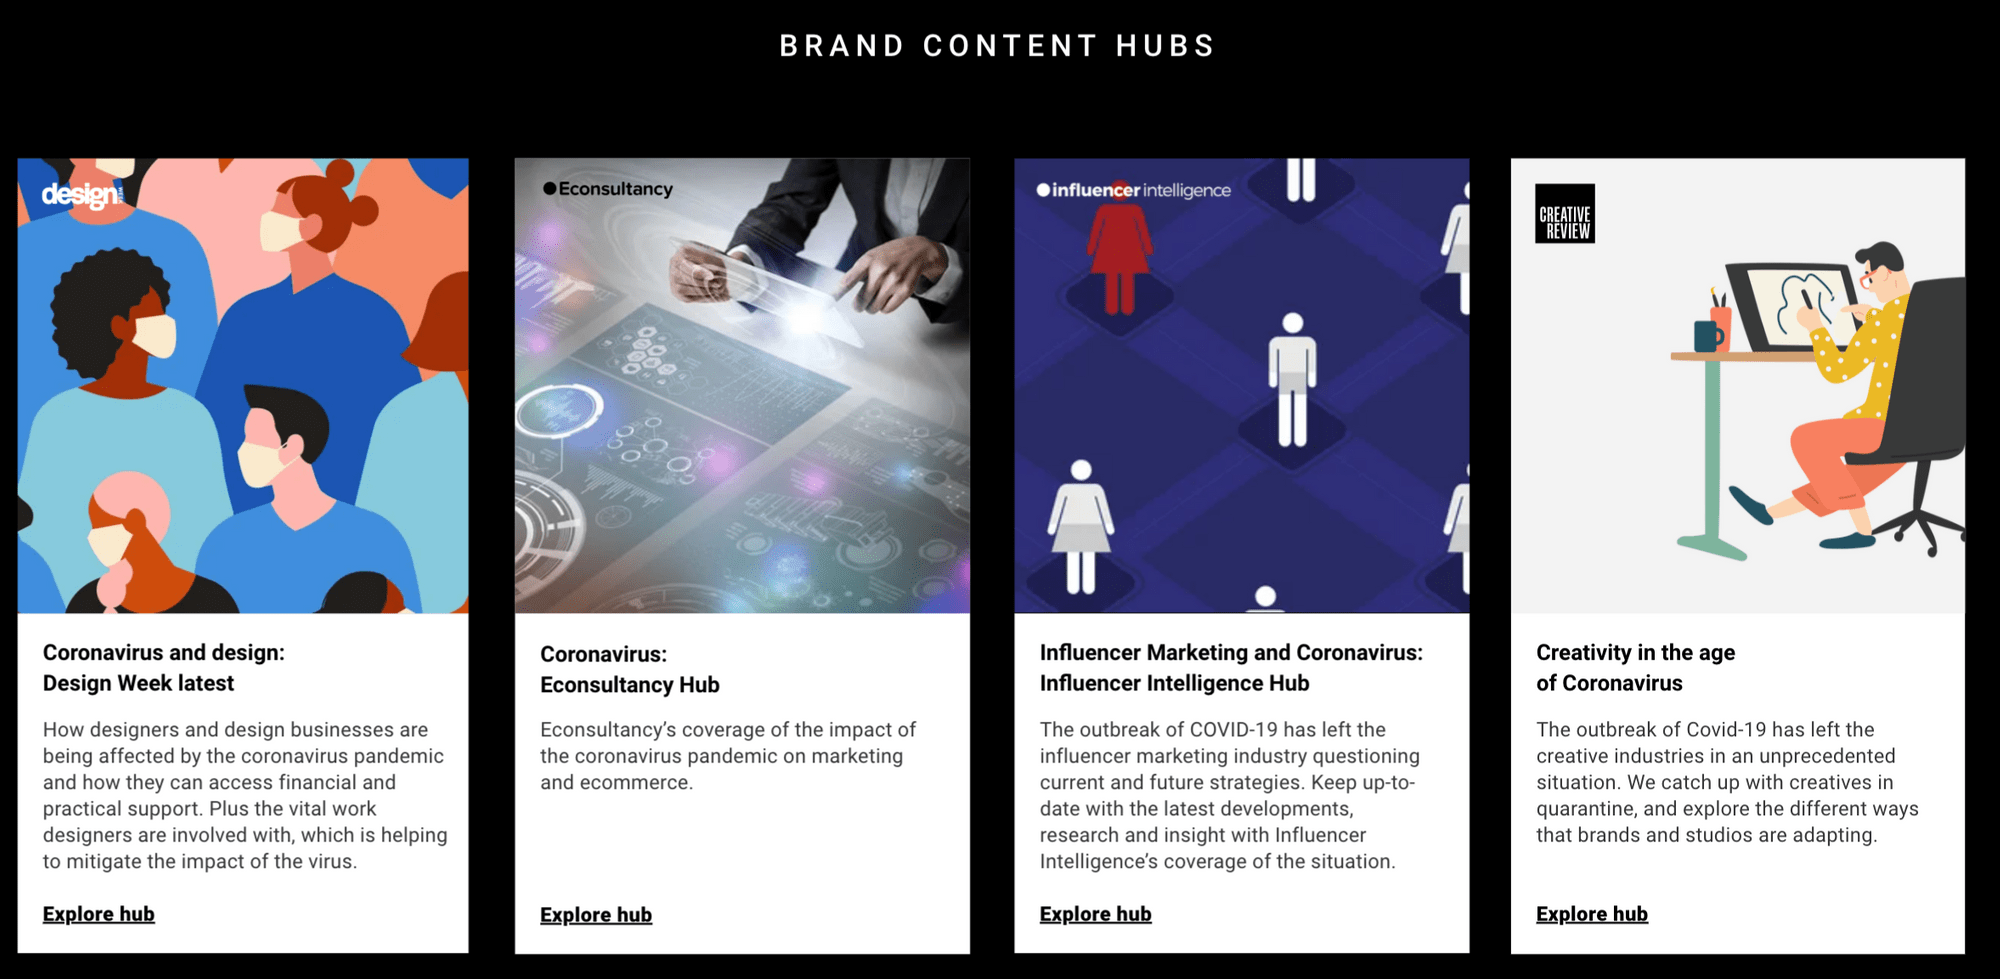 Econsultancy Design Week Influencer Intelligence and Marketing Week brand content hubs support their Lowdown Webinar series